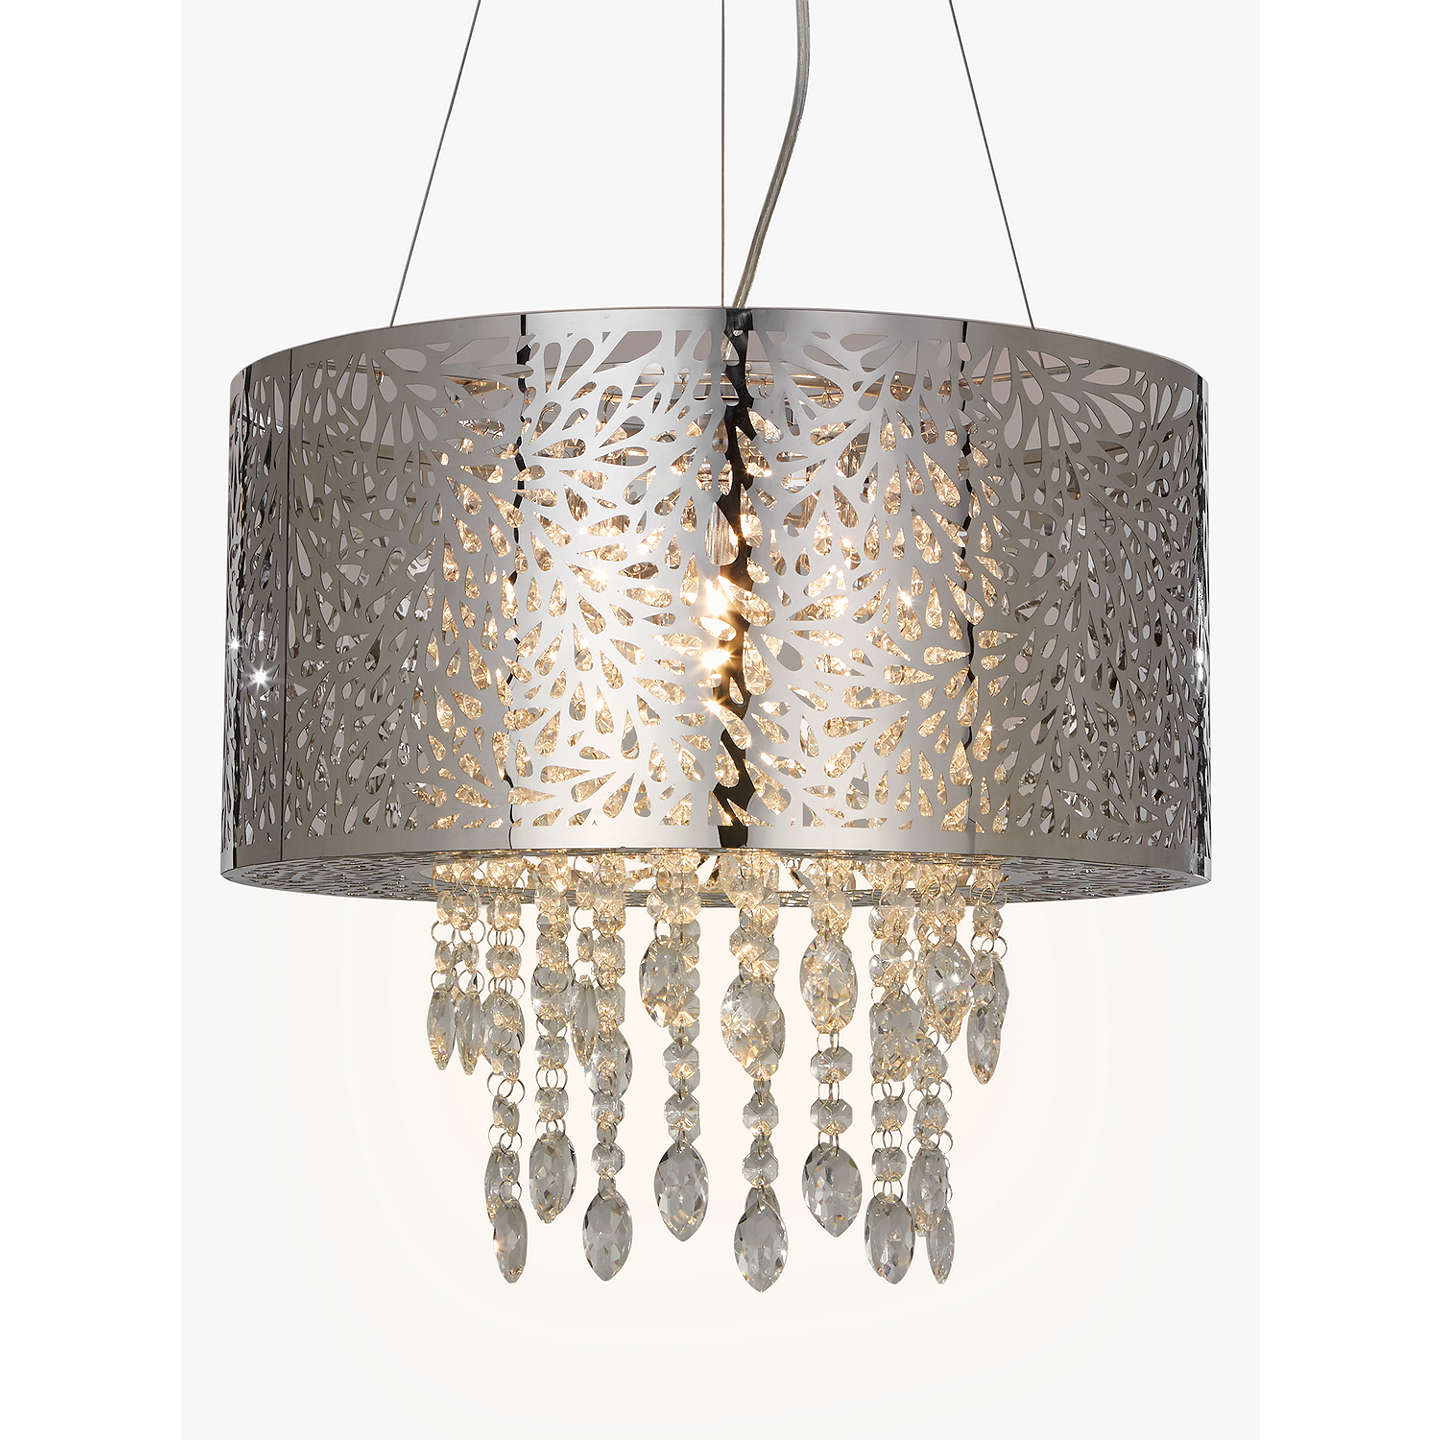 BuyJohn Lewis Destiny Crystal Fretwork Ceiling Light Silver/Clear Online at johnlewis.com ...  sc 1 st  John Lewis & John Lewis Destiny Crystal Fretwork Pendant Ceiling Light Silver ...